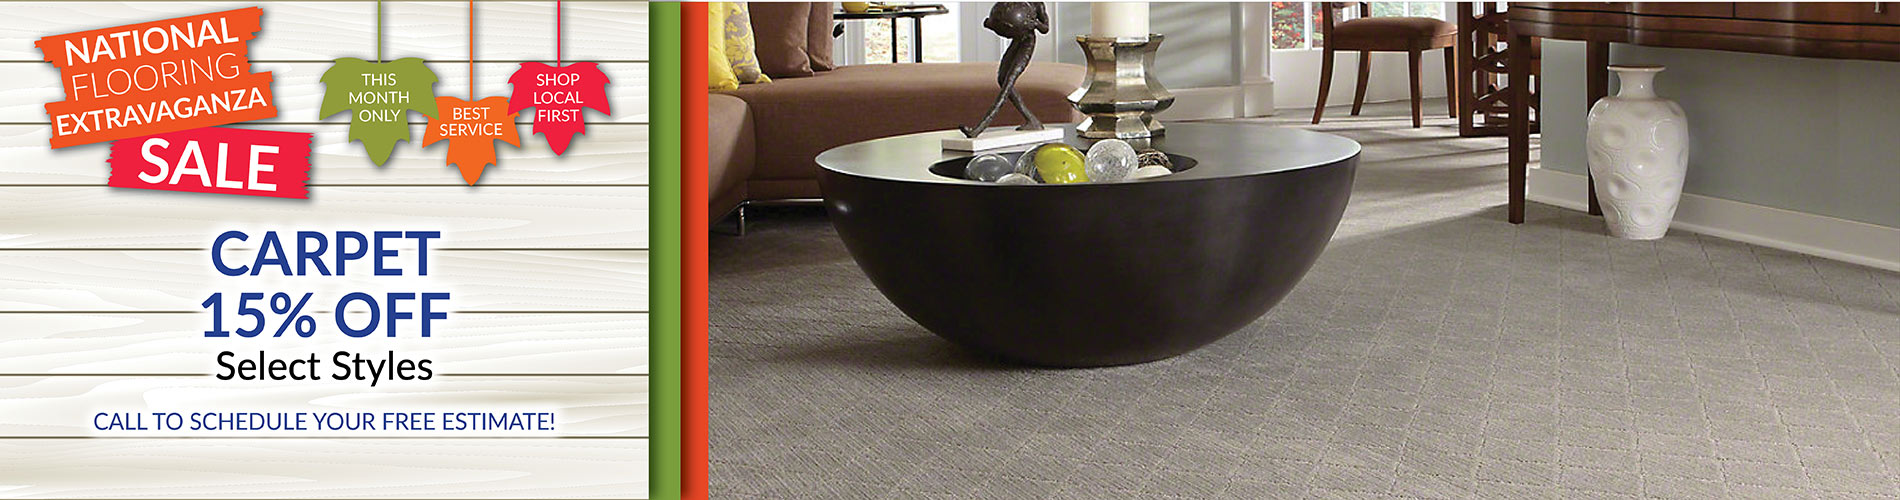 National Flooring Extravaganza Sale Going On Now! 15% off select carpet styles – Call to schedule your free estimate!